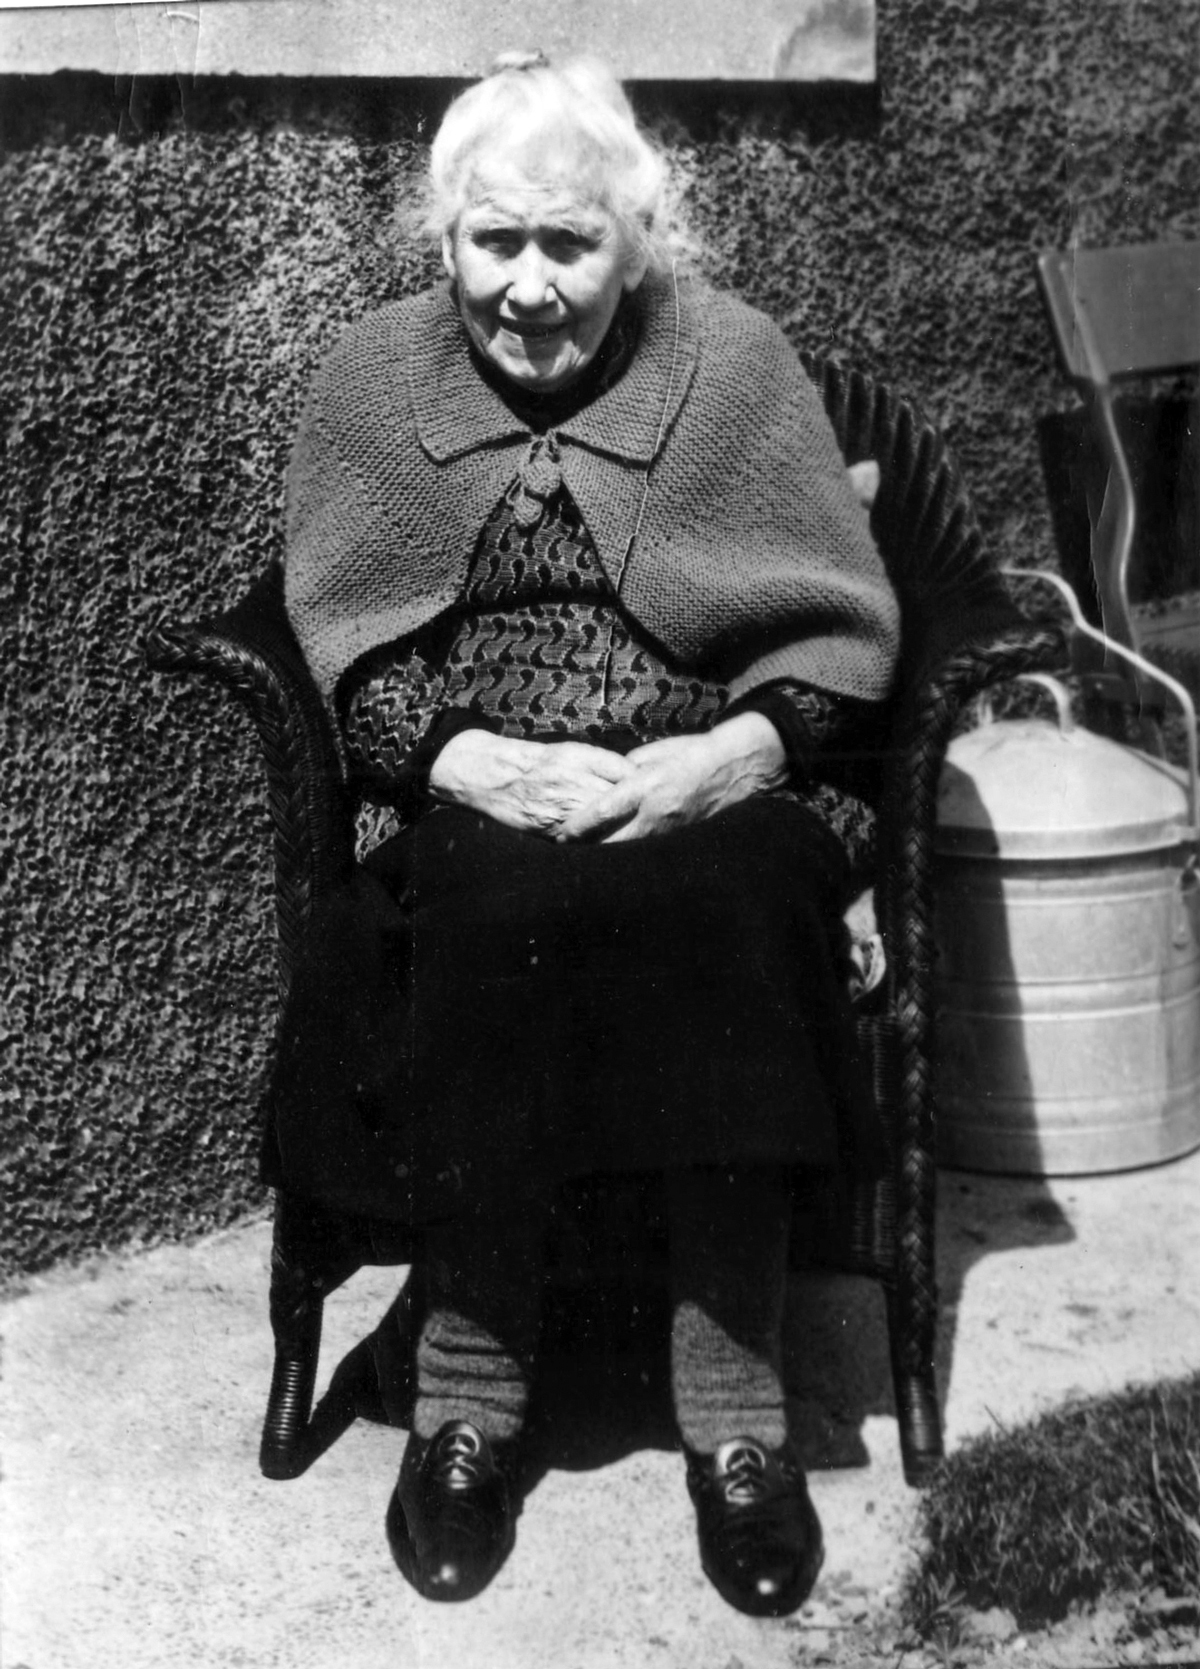 Elderly Woman Sitting Outside Her Home 1960s